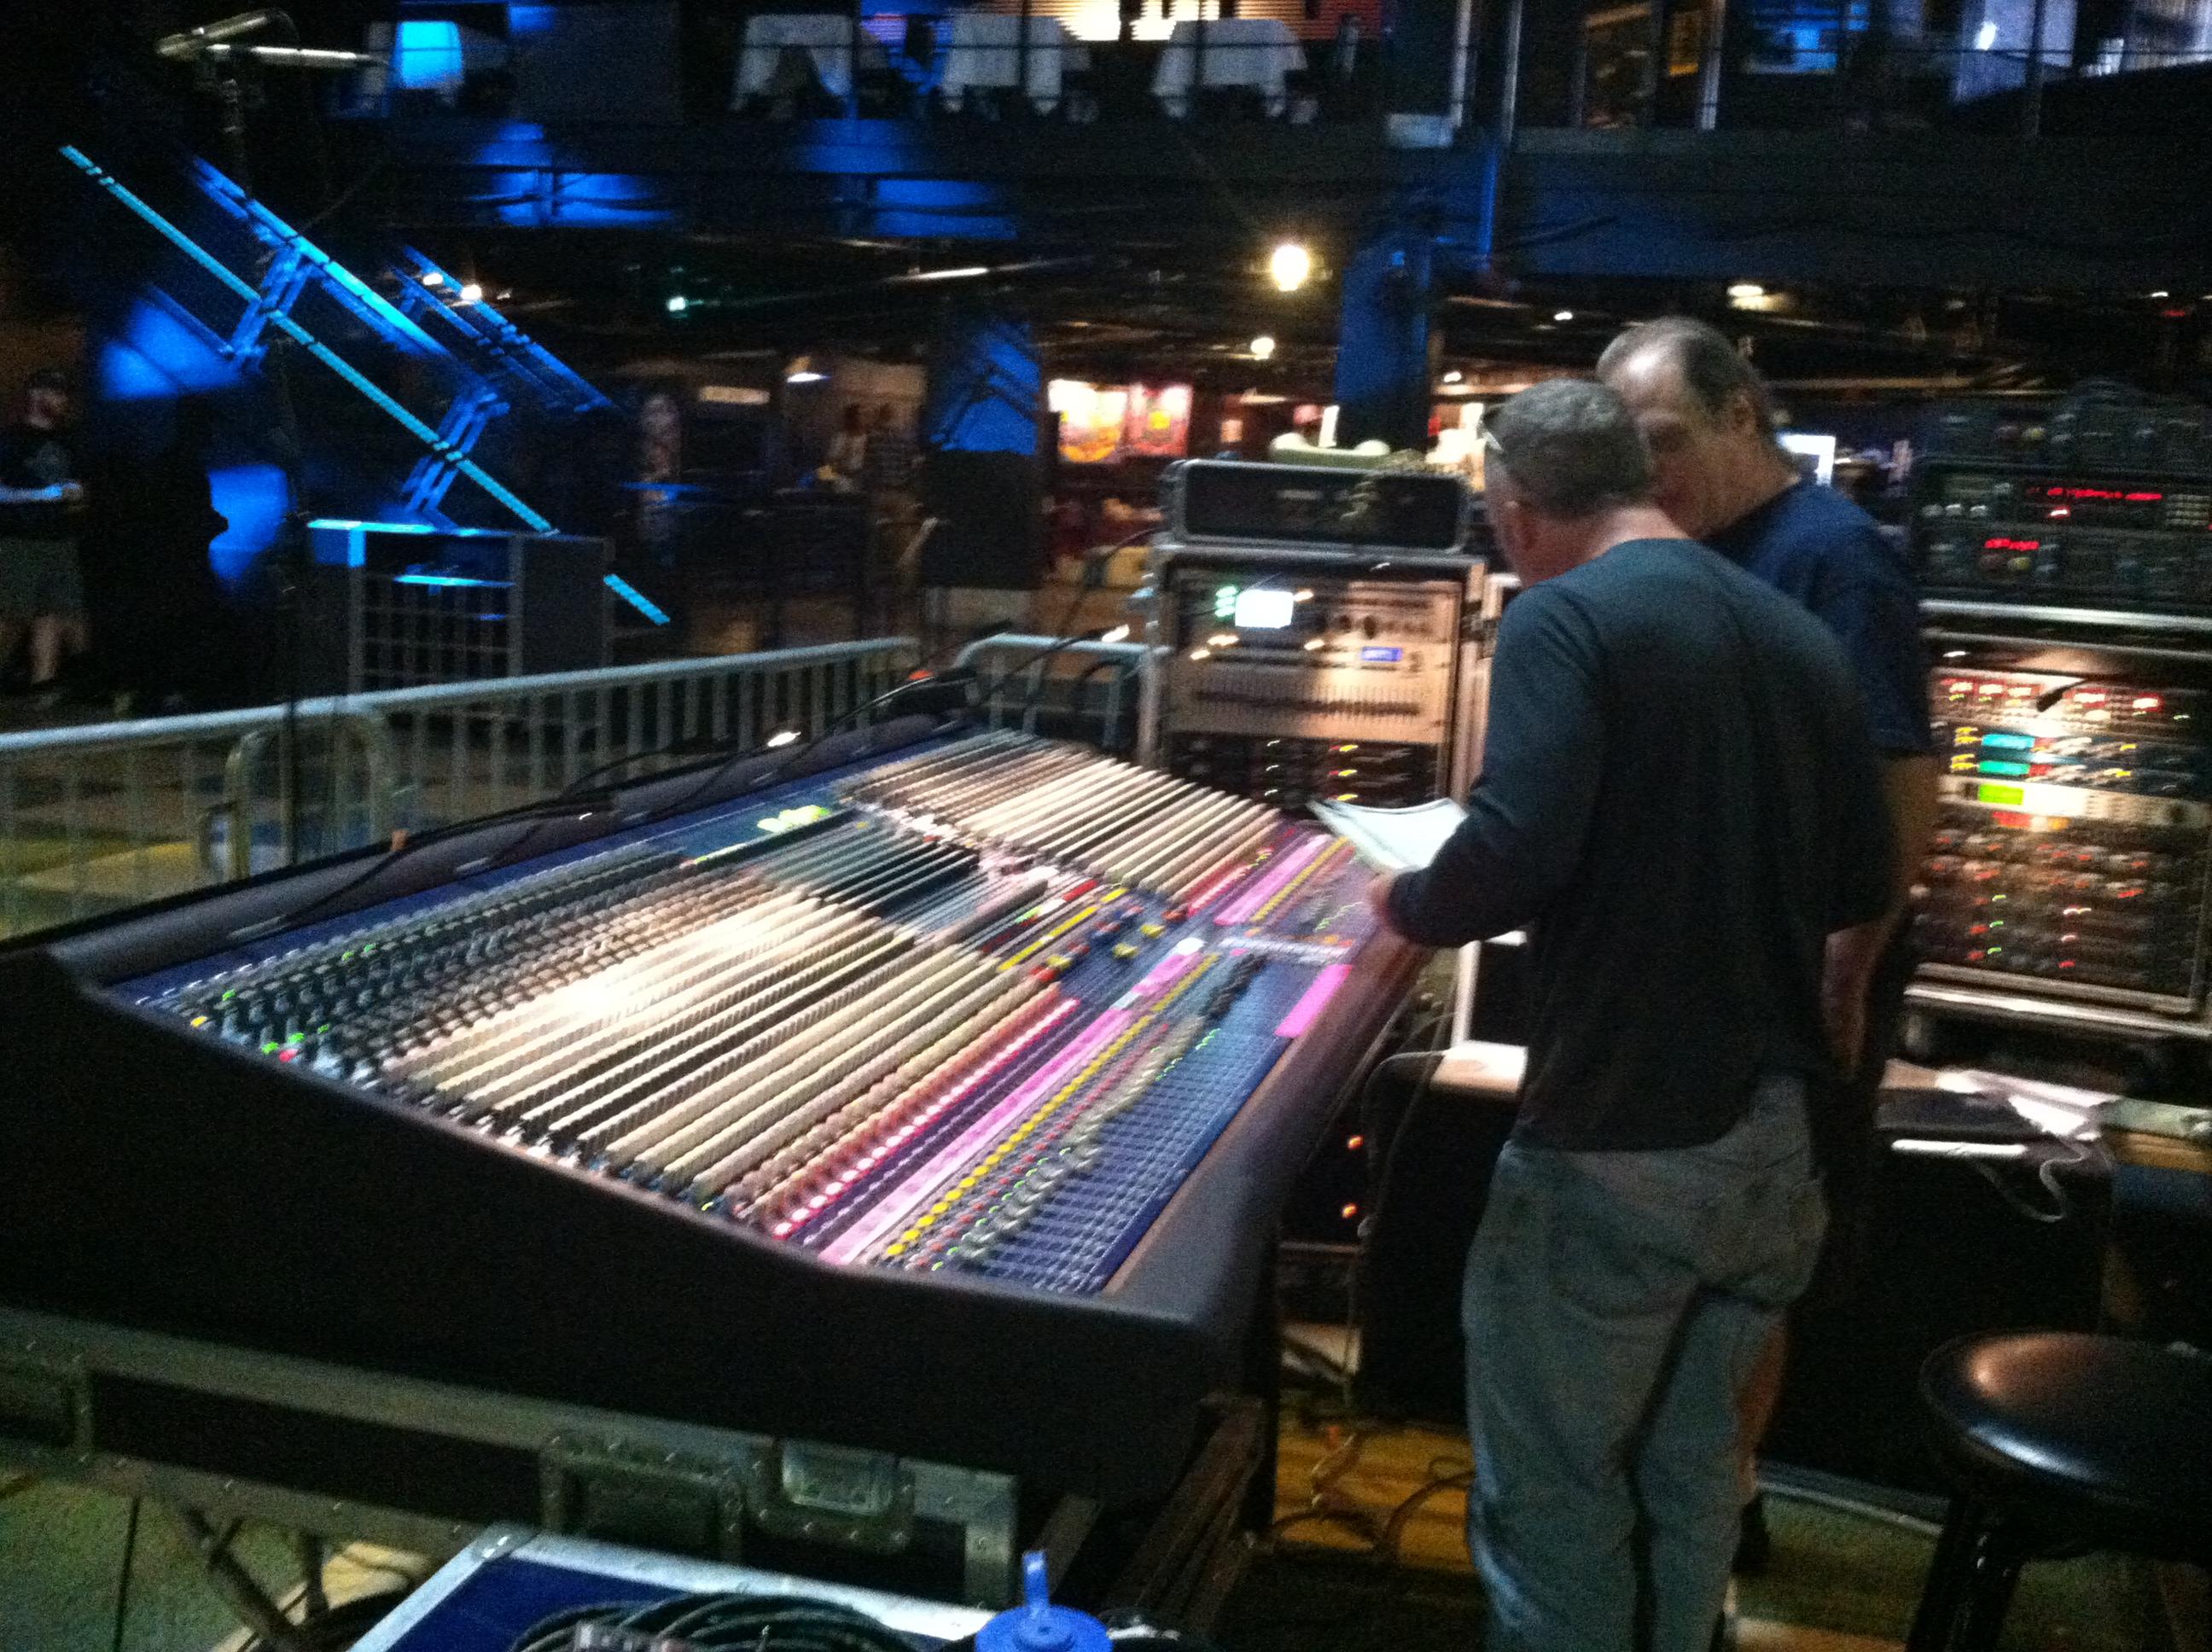 Conference with the Sound Tech for First Ave Greg